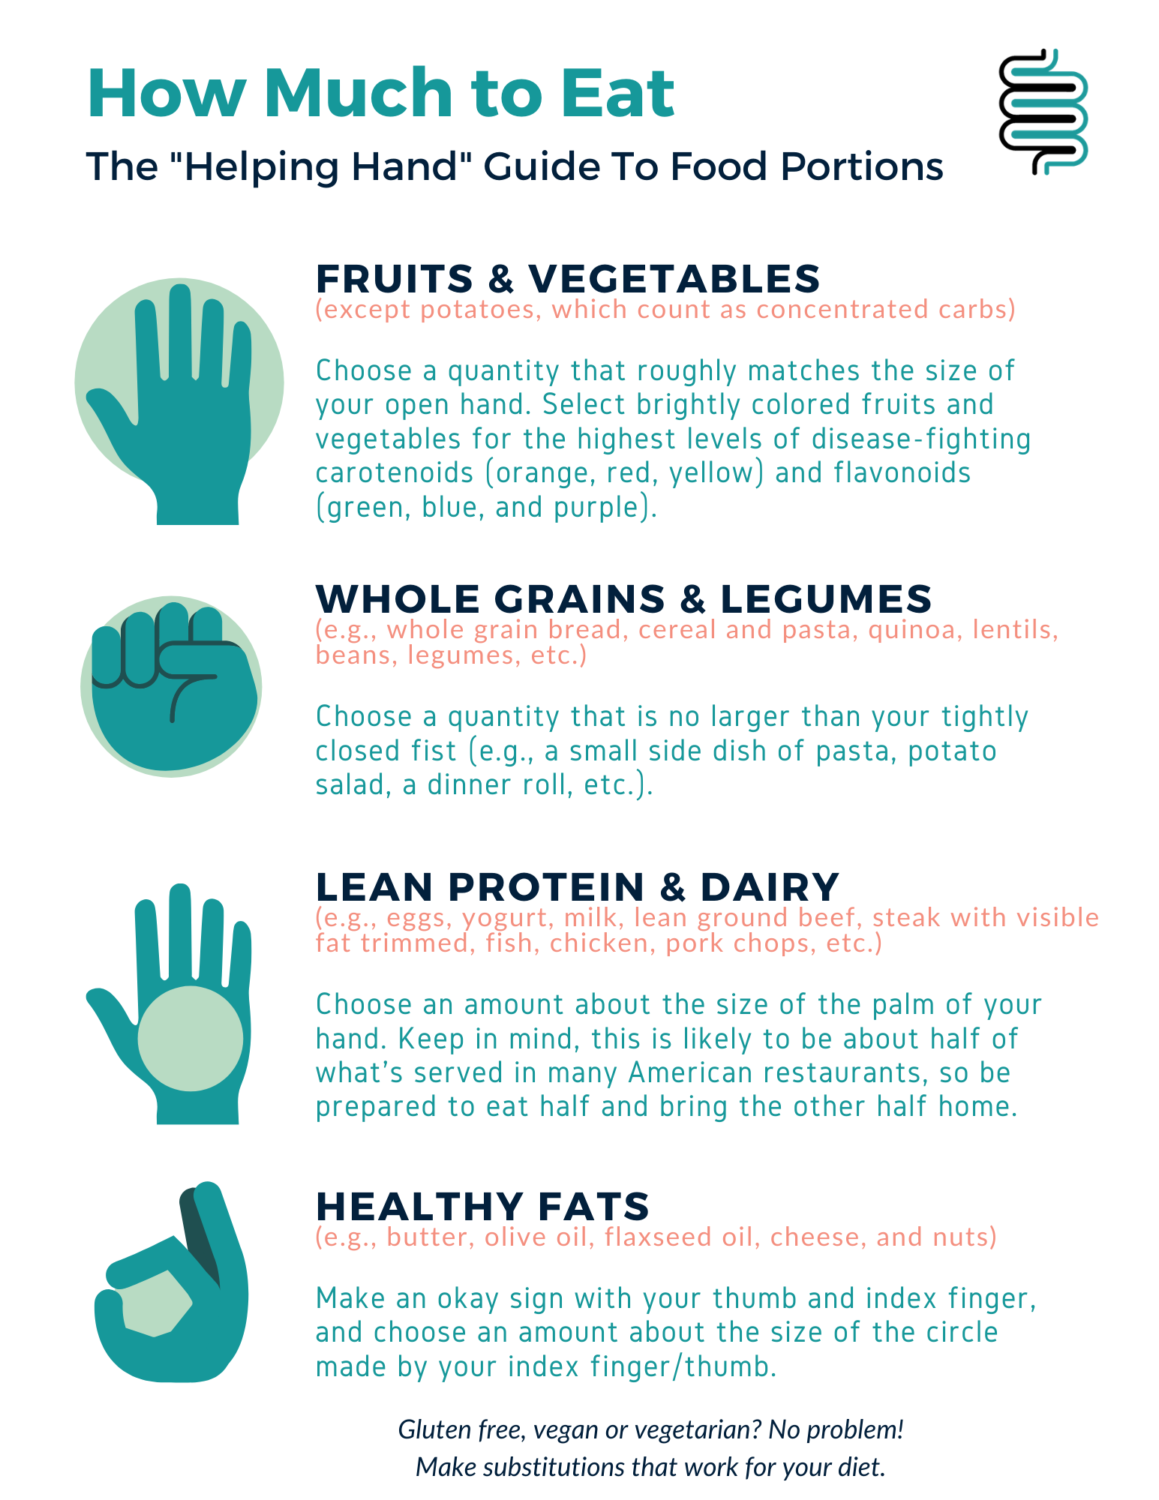 An infographic that explains an easy trick for knowing how much of any food type to include in a single meal called the Helping Hand Guide To Food Portions